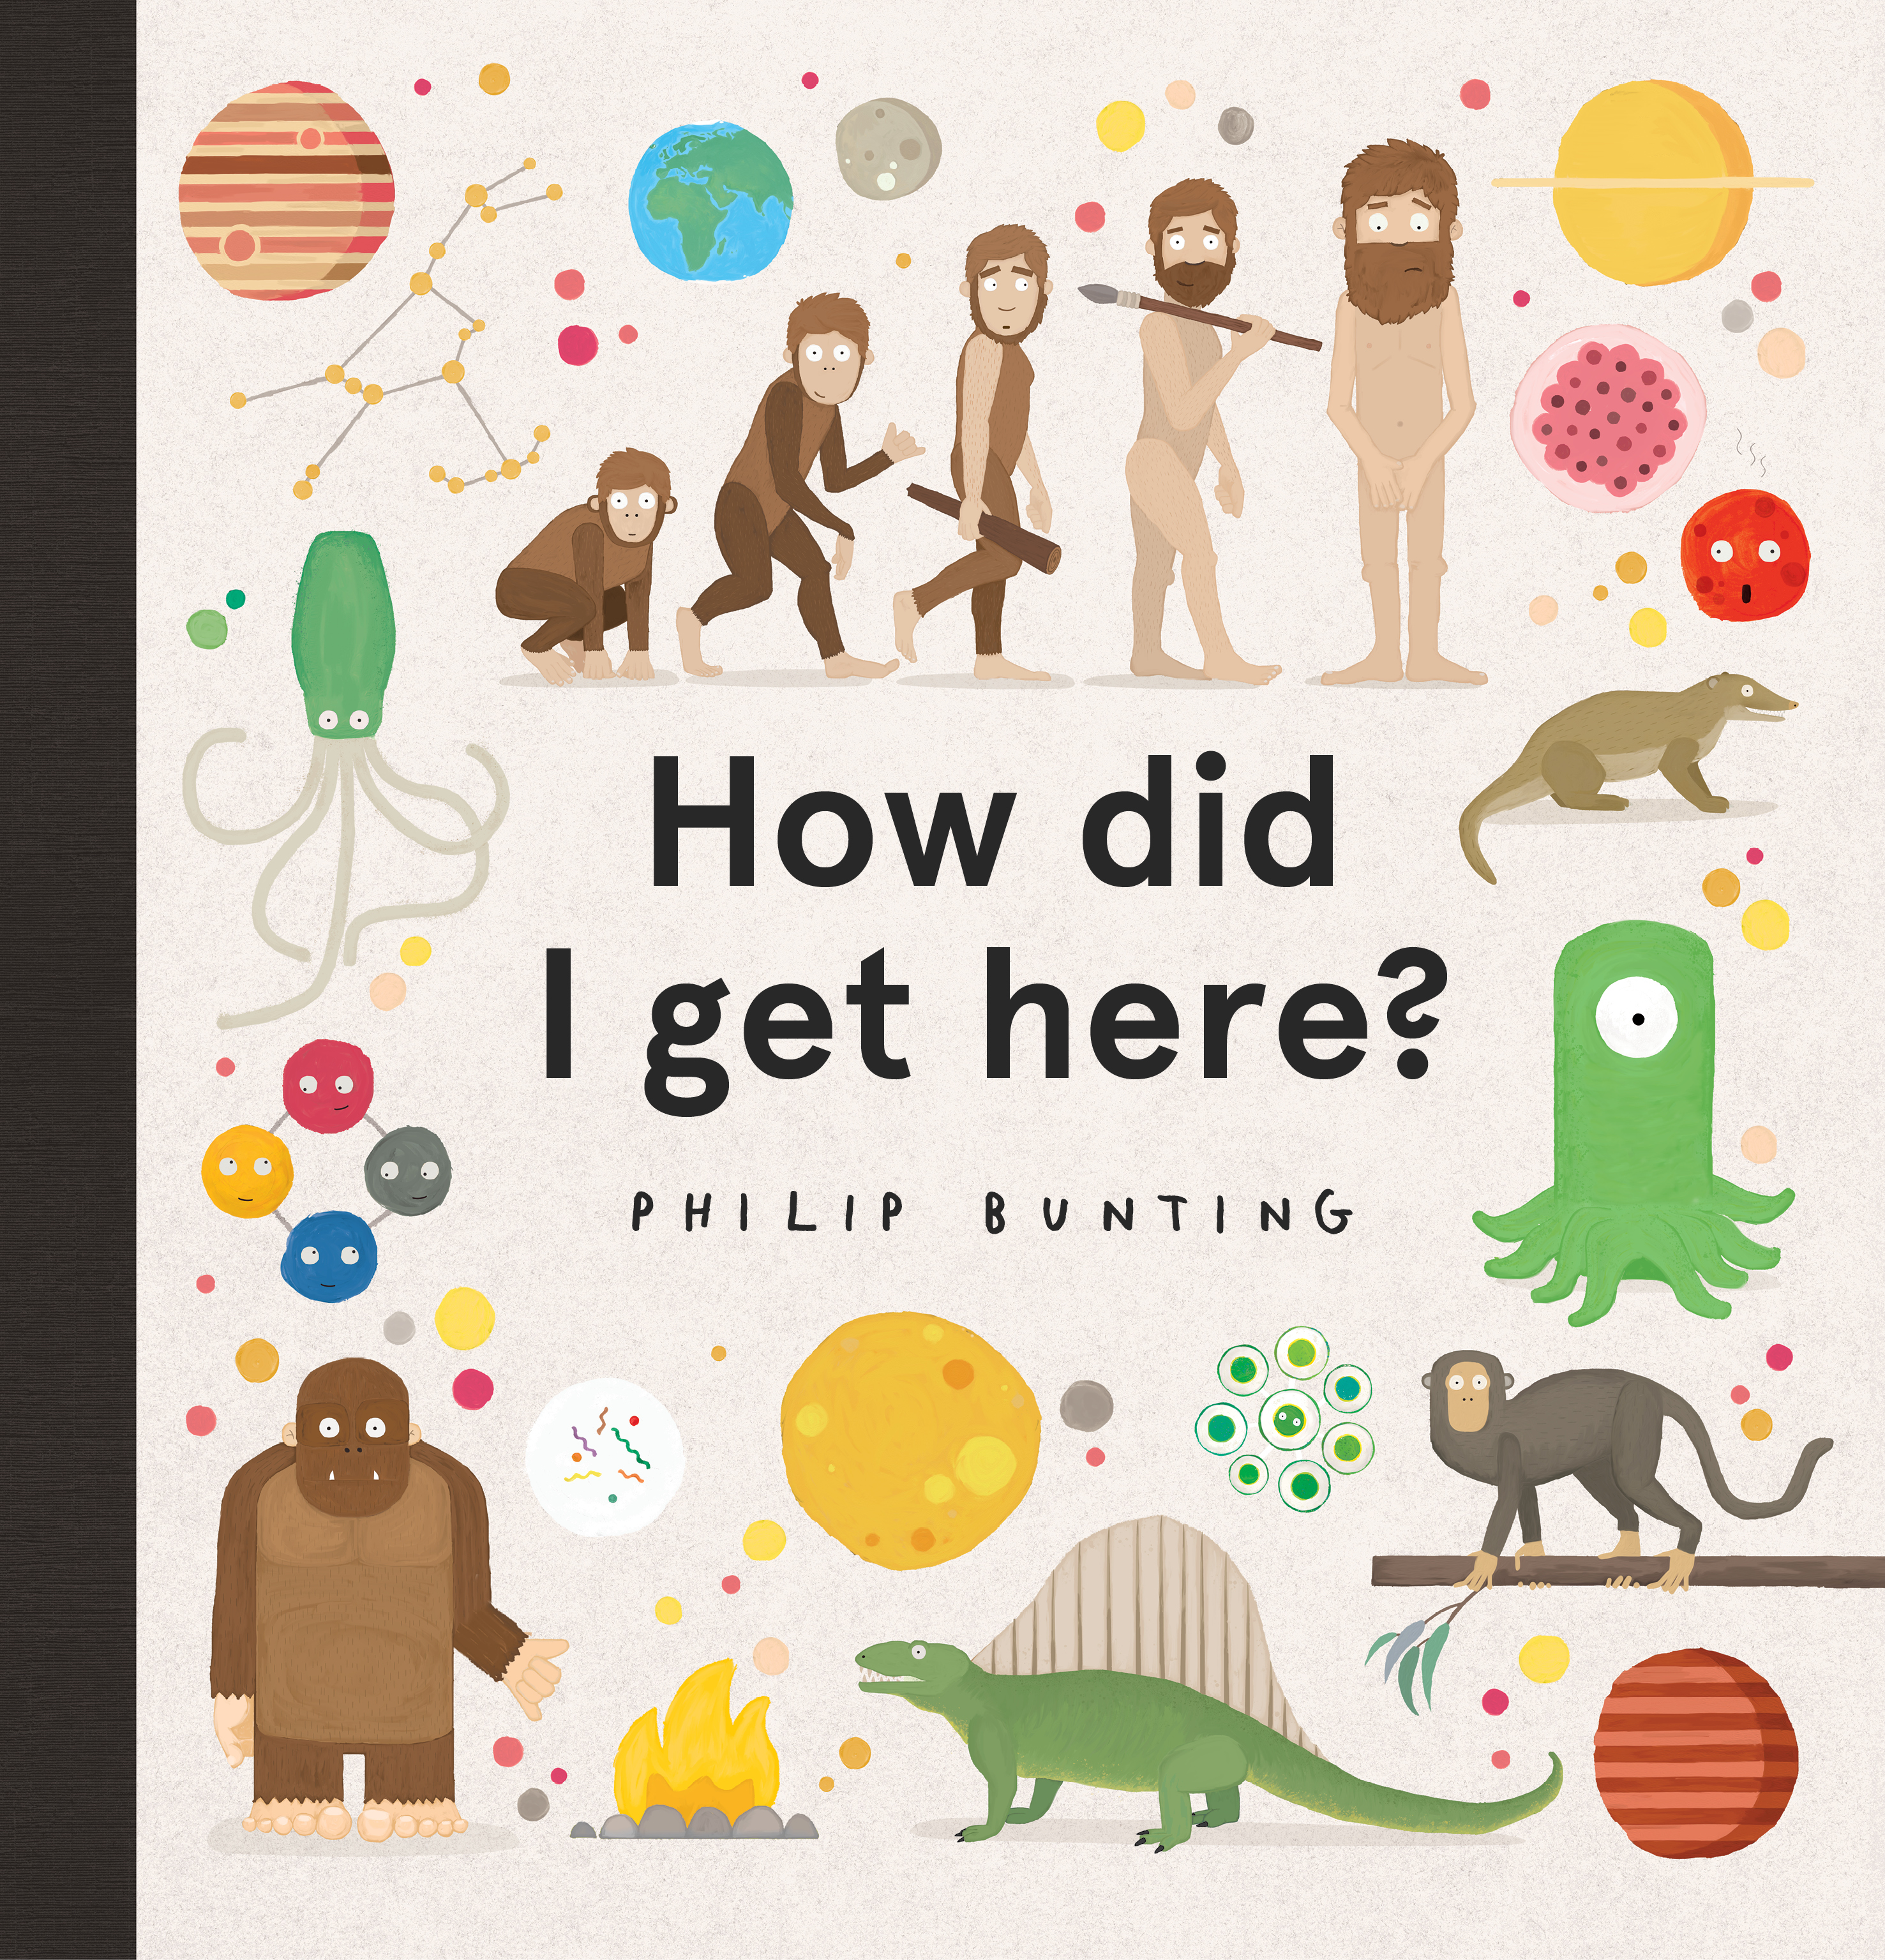 How Did I Get Here? by Philip Bunting